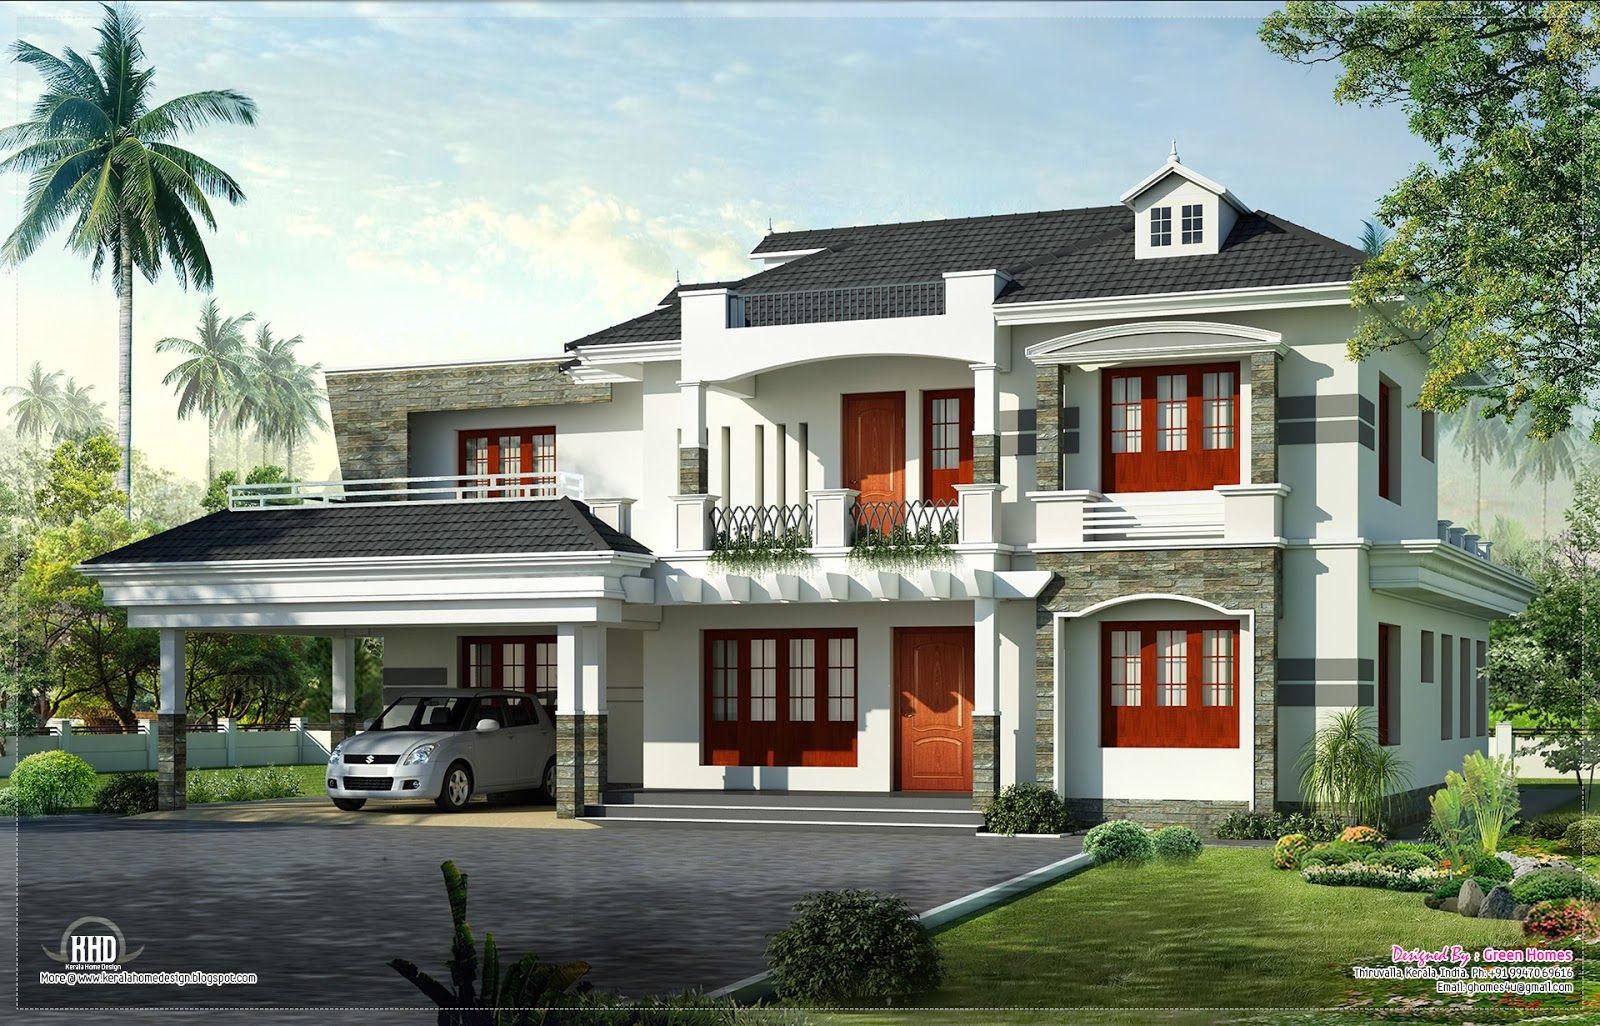 Best Kitchen Gallery: Amazing Designs For New Homes New Kerala Home On Home Design of New Homes Styles Design  on rachelxblog.com